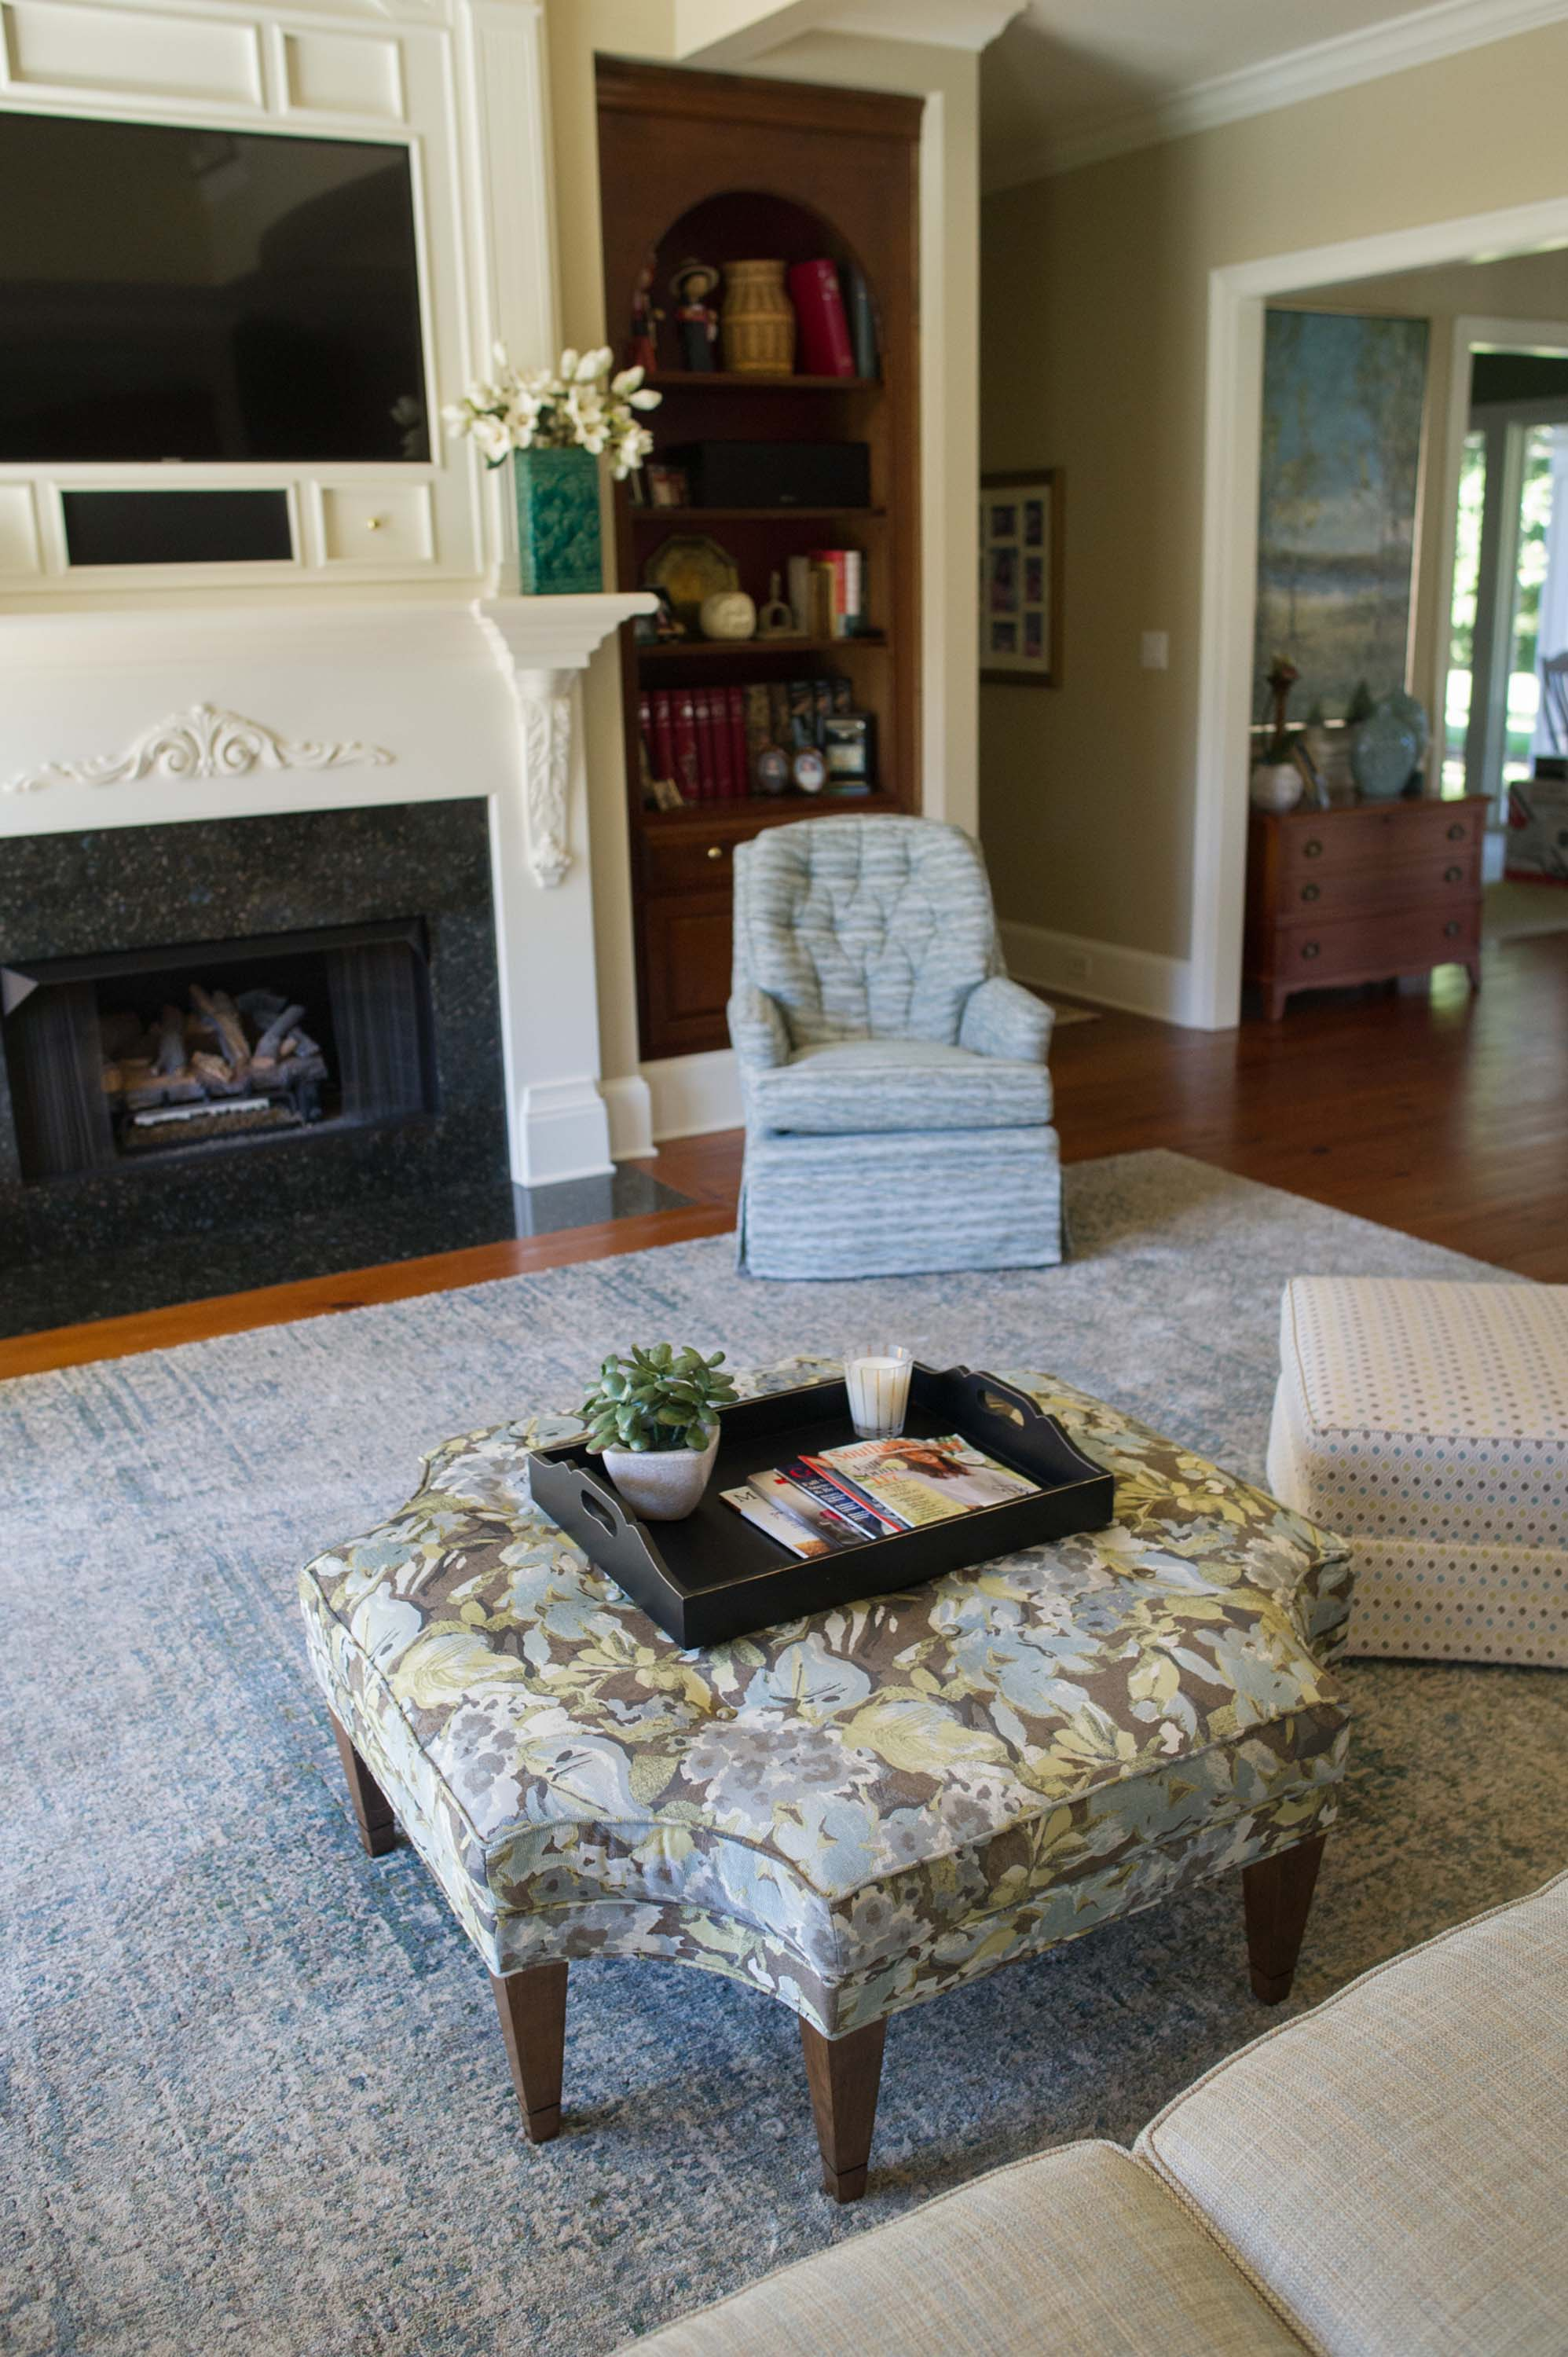 Great Room with Custom Furniture, Large Area Rug, Fireplace and Accessories